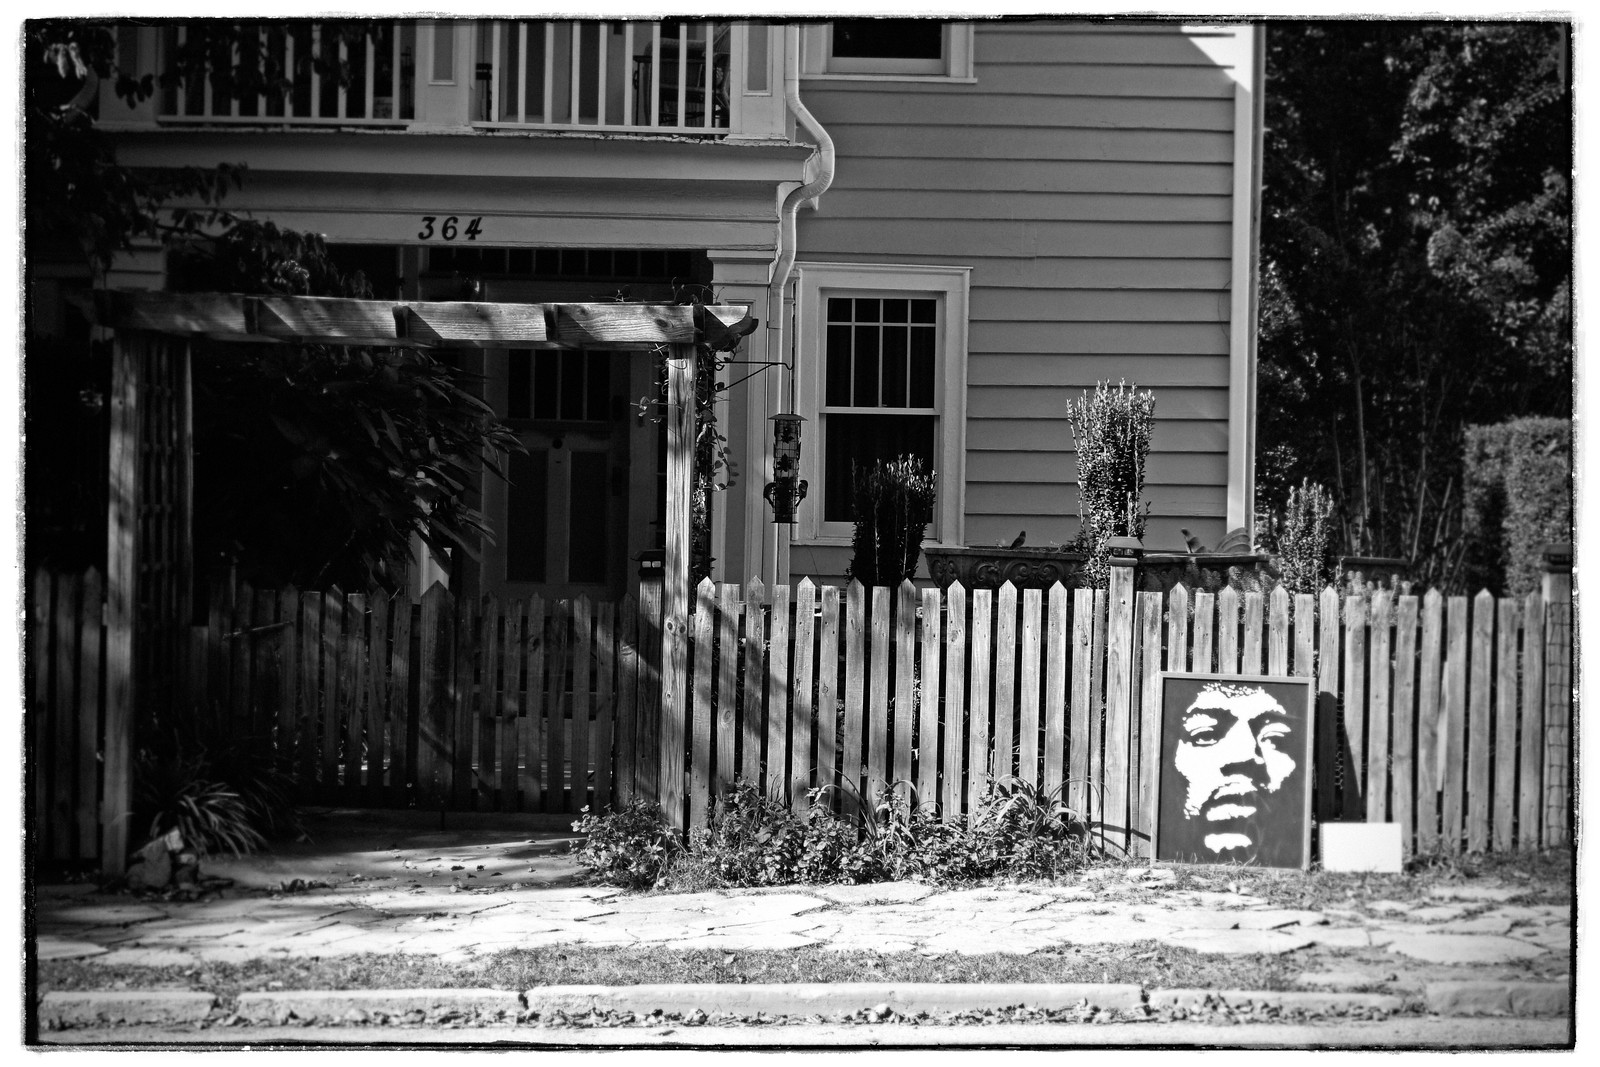 Fence and Print of Jimi Hendrix. Sept 2015